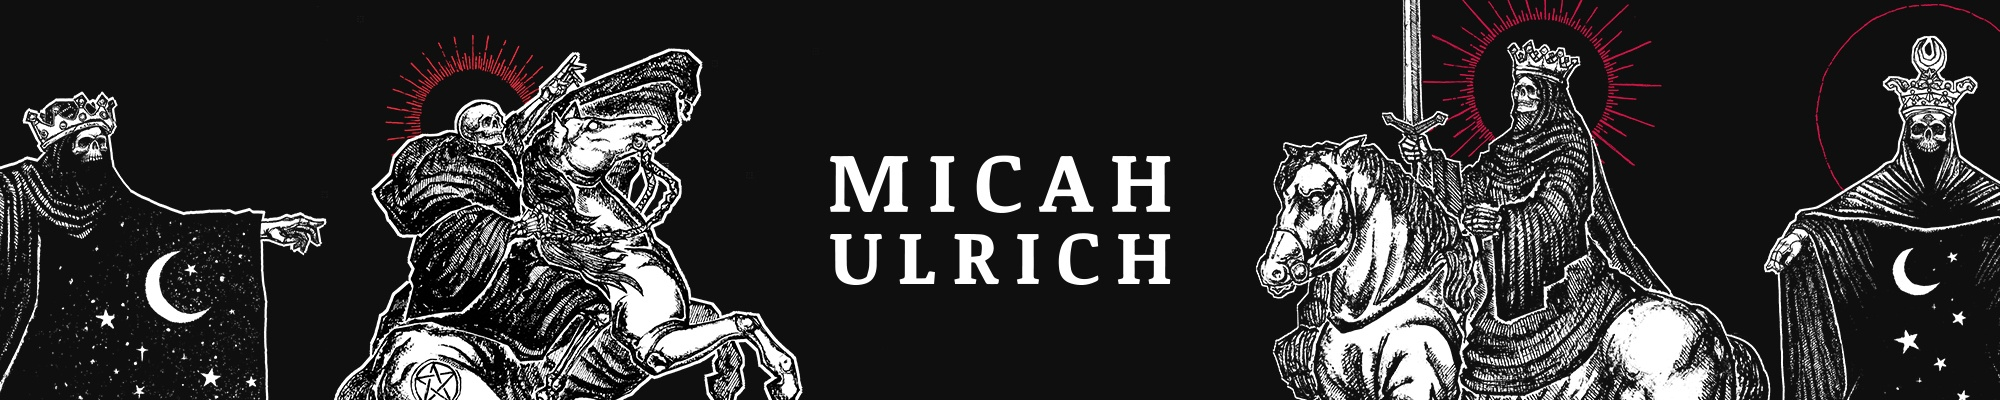 micahulrich Cover